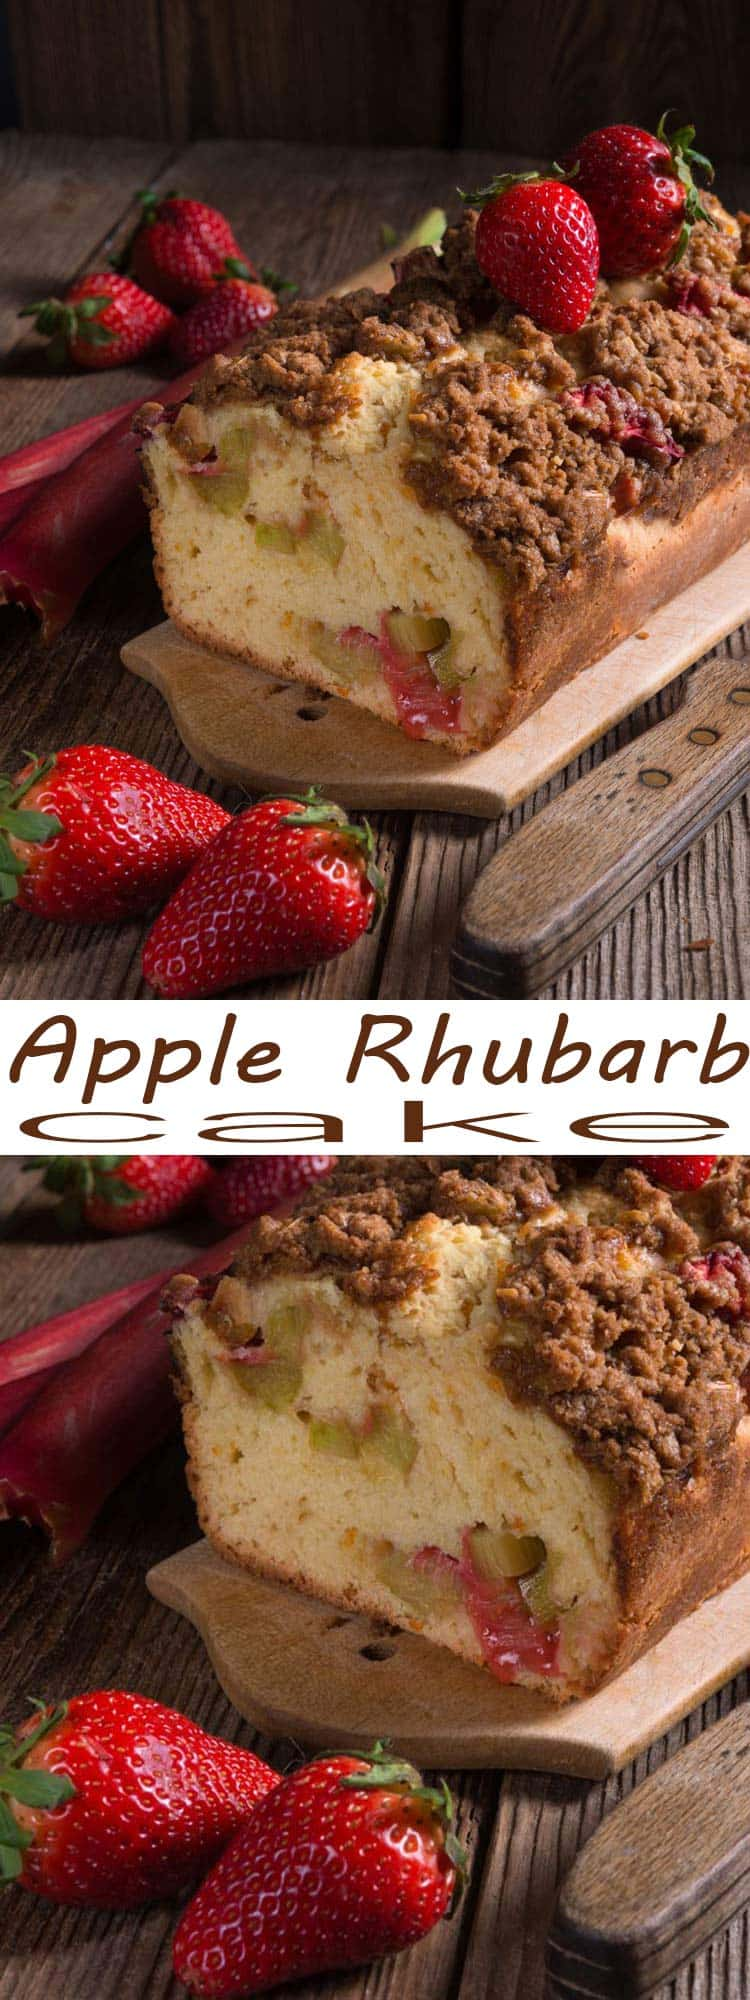 rhubarb cake. This Apple Rhubarb Cake is so easy to make and absolutely delicious. You'll be really happy with the end result! This is a great way to use up rhubarb.